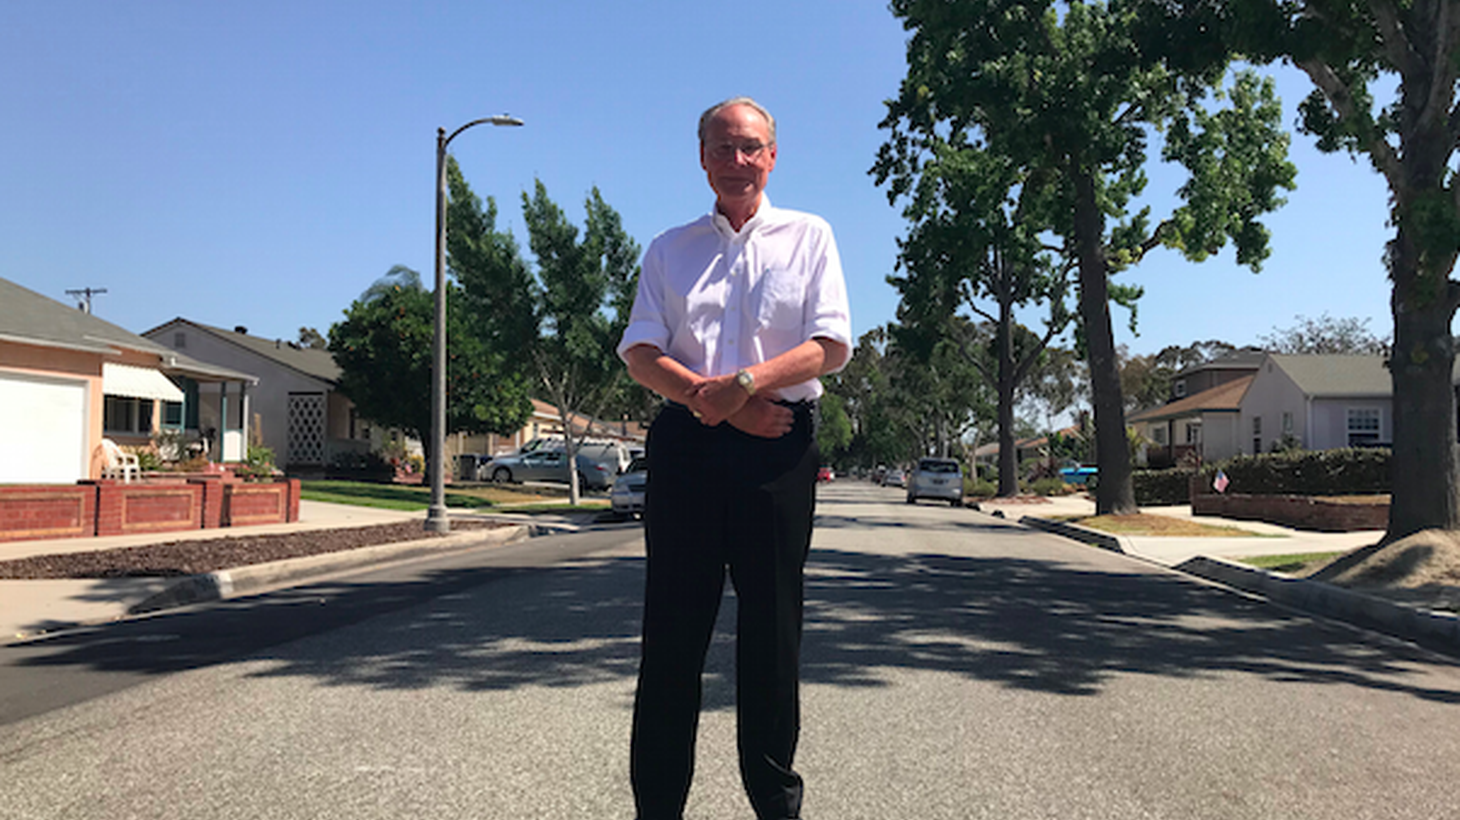 Los Angeles is pushing for greater densification, even as many Angelenos still dream of the single family home. We visit the city of Lakewood to see how they are keeping that dream alive.